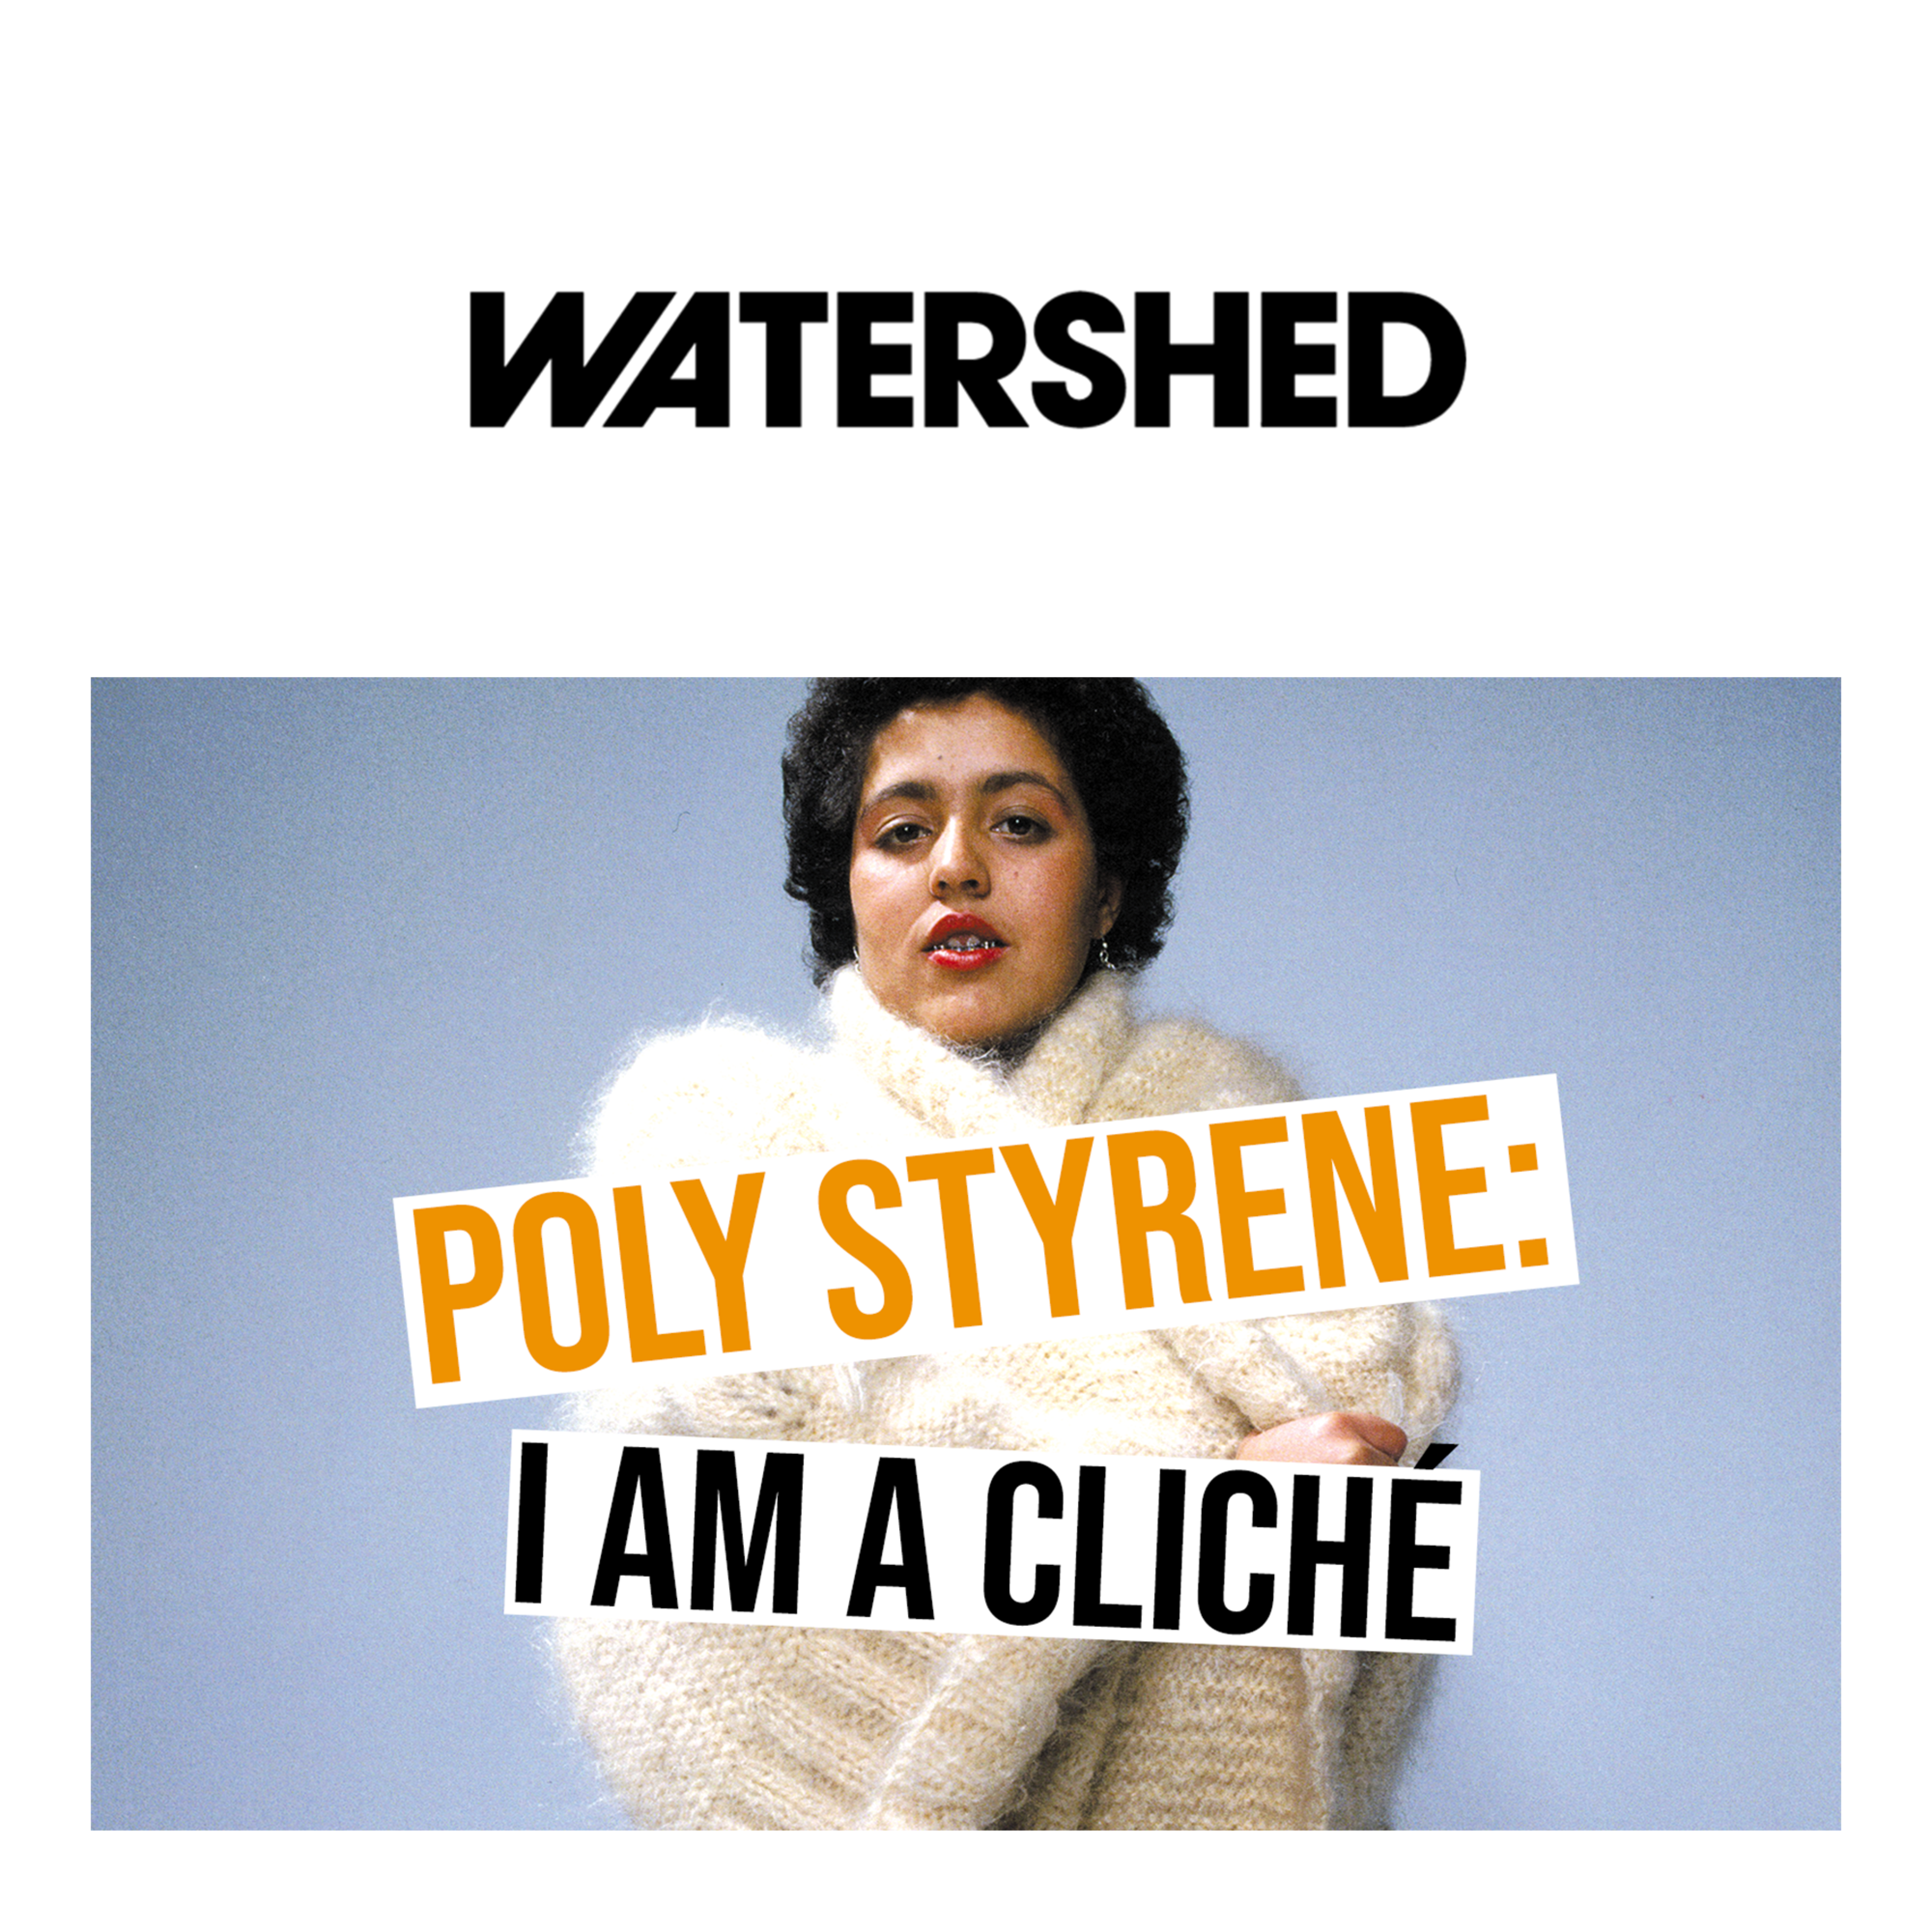 Poly Styrene: I Am a Cliché at Watershed